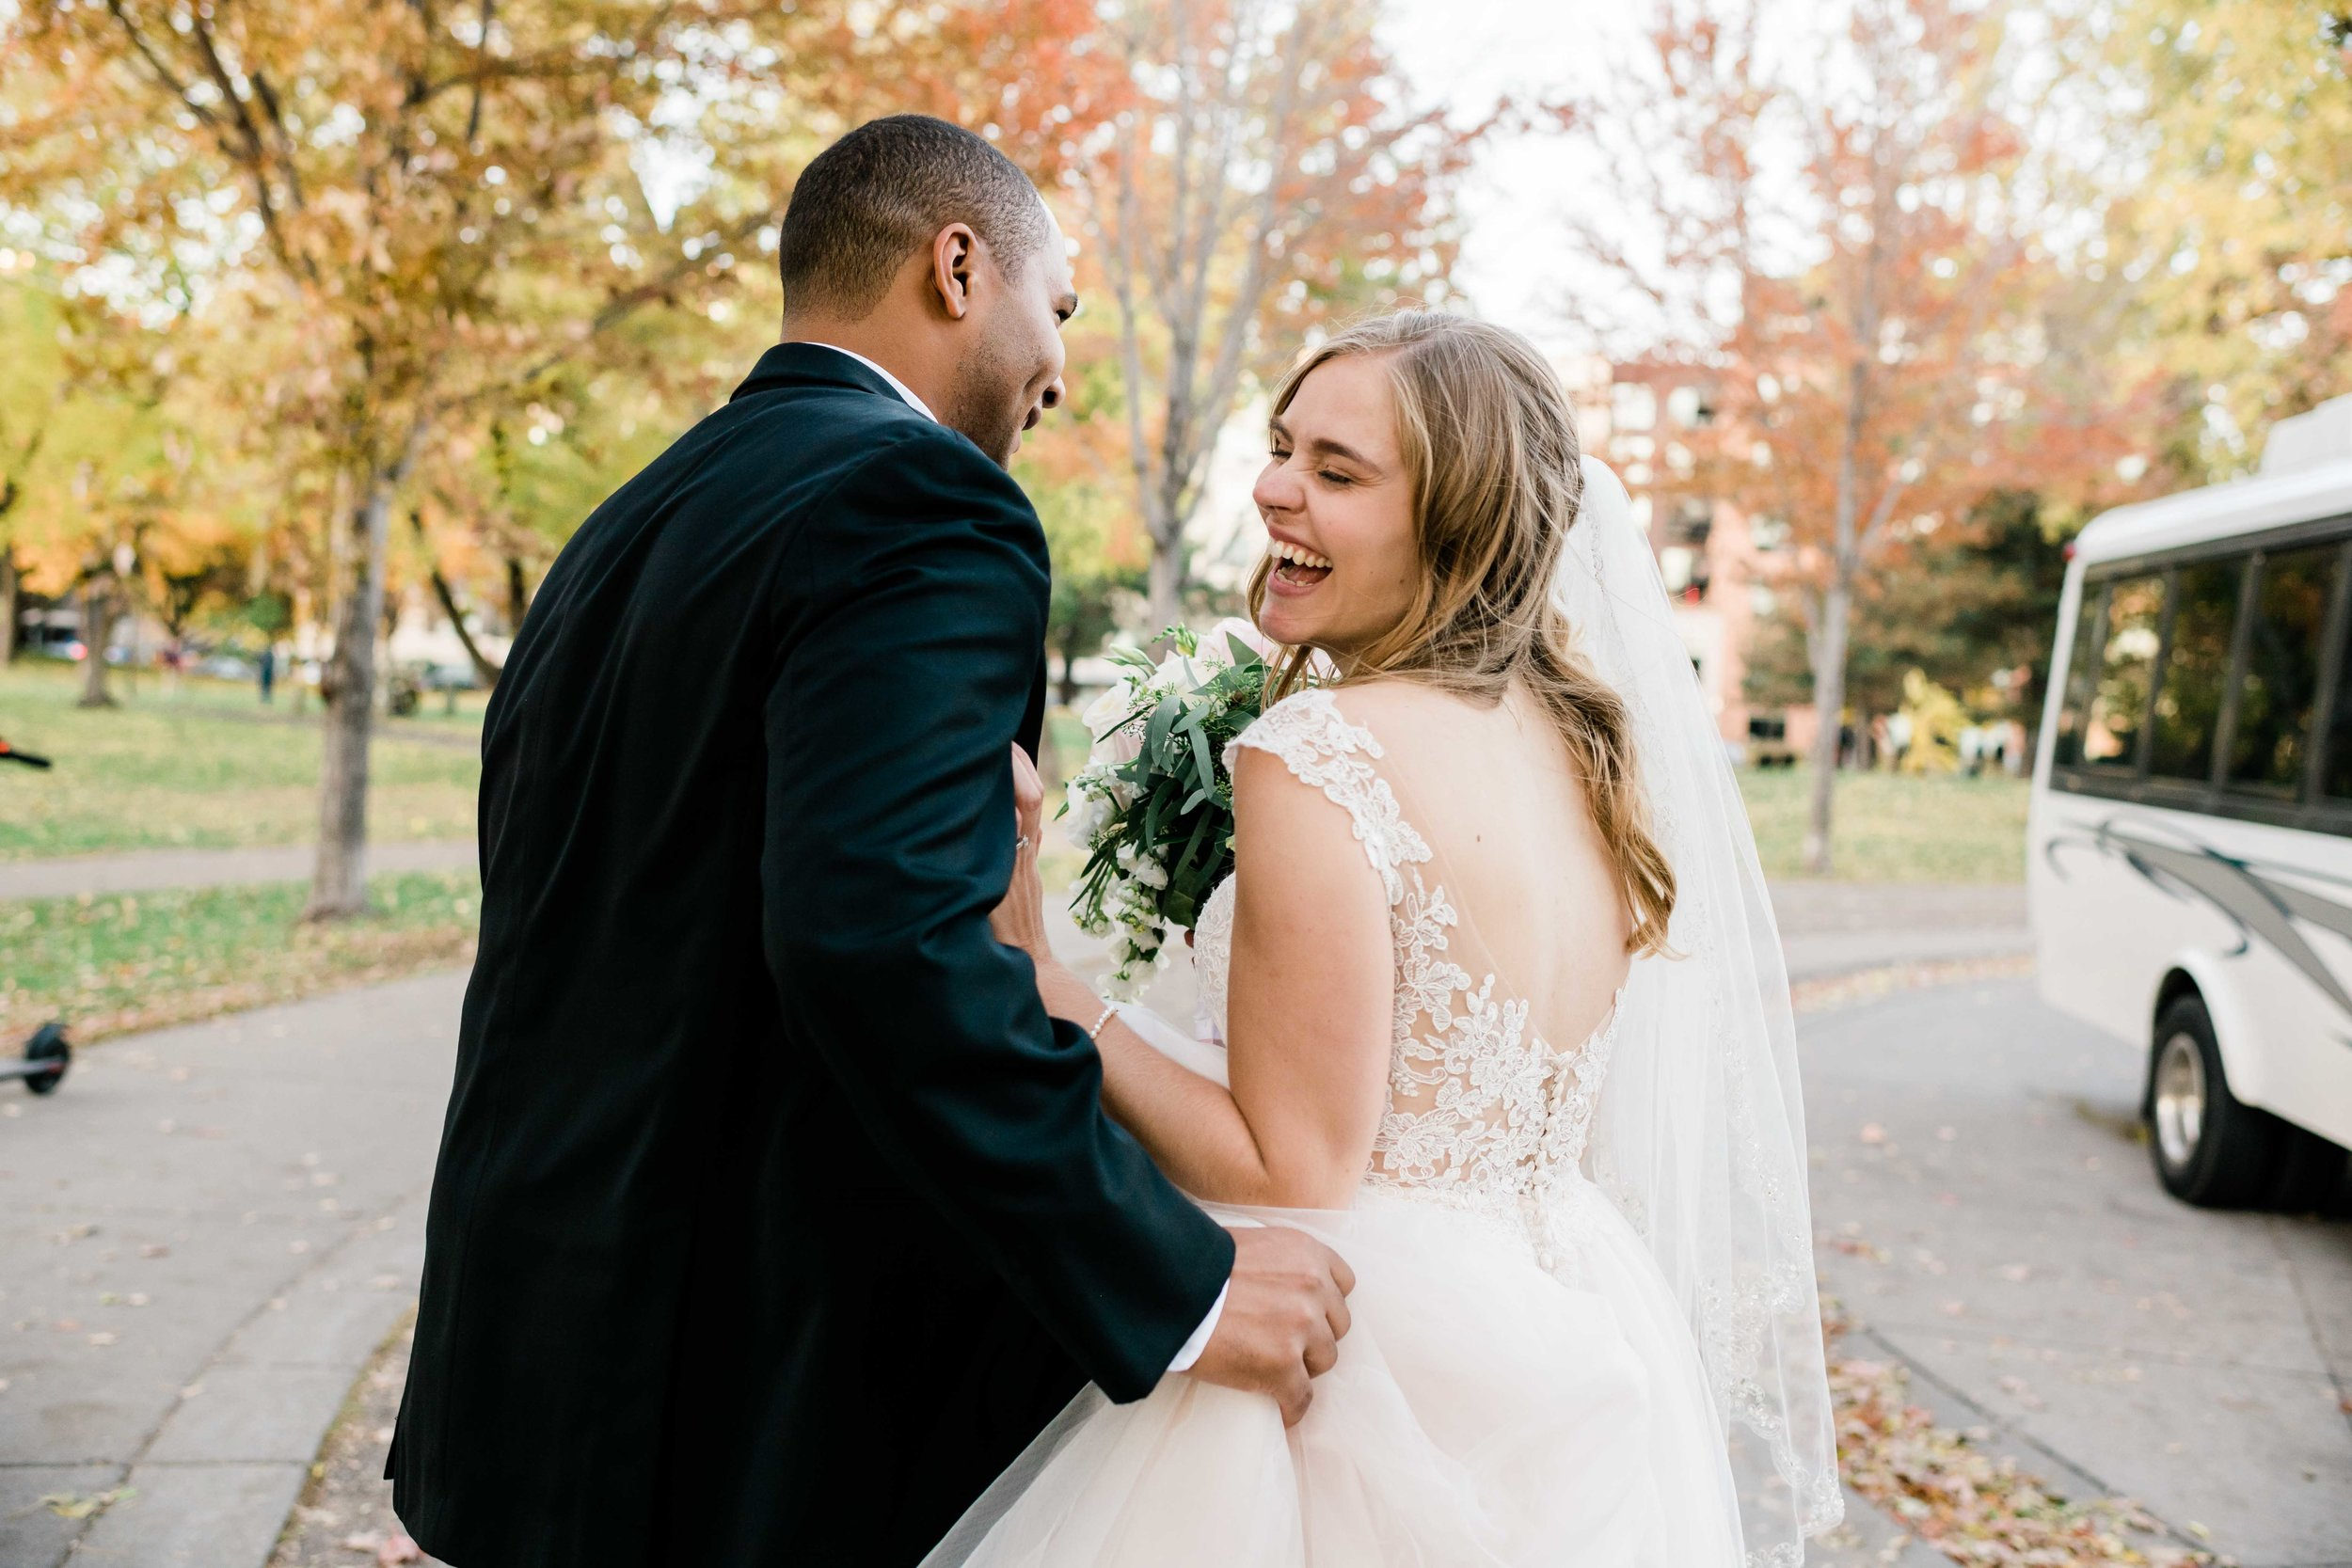 TESTIMONIALS - Happy couples mean everything to me! Read the testimonials to see what other couples are saying about their experience with AJ Photo Company.